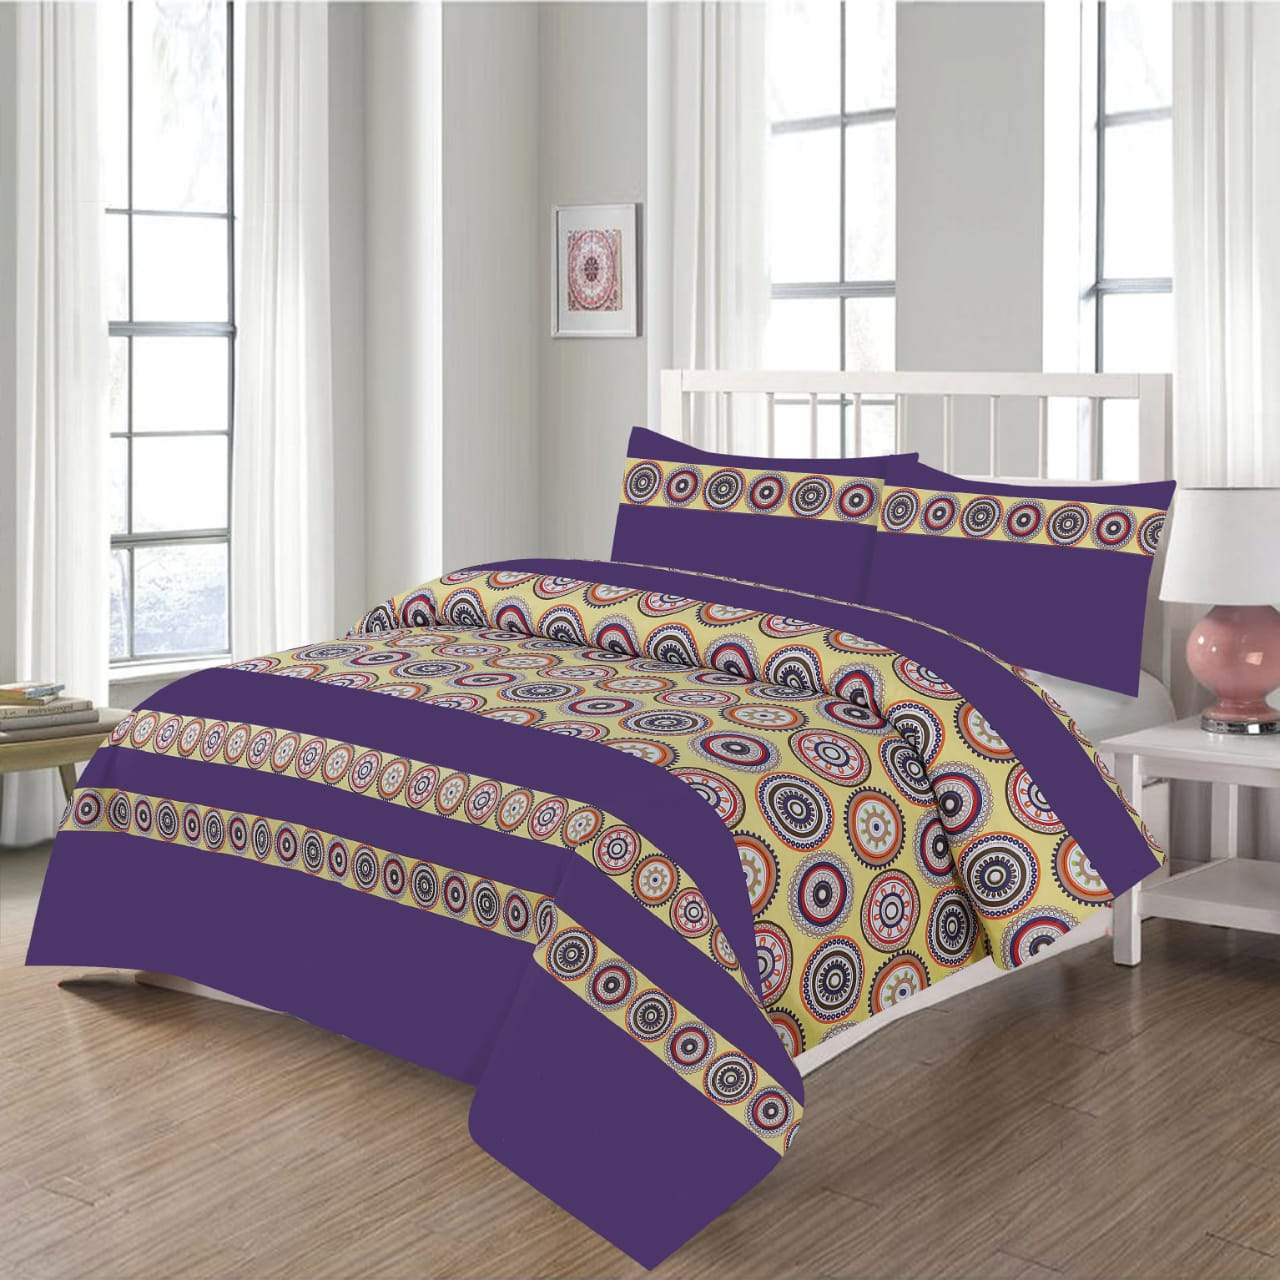 Grace D209-Cotton PC King Size Bedsheet with 2 Pillow Covers.